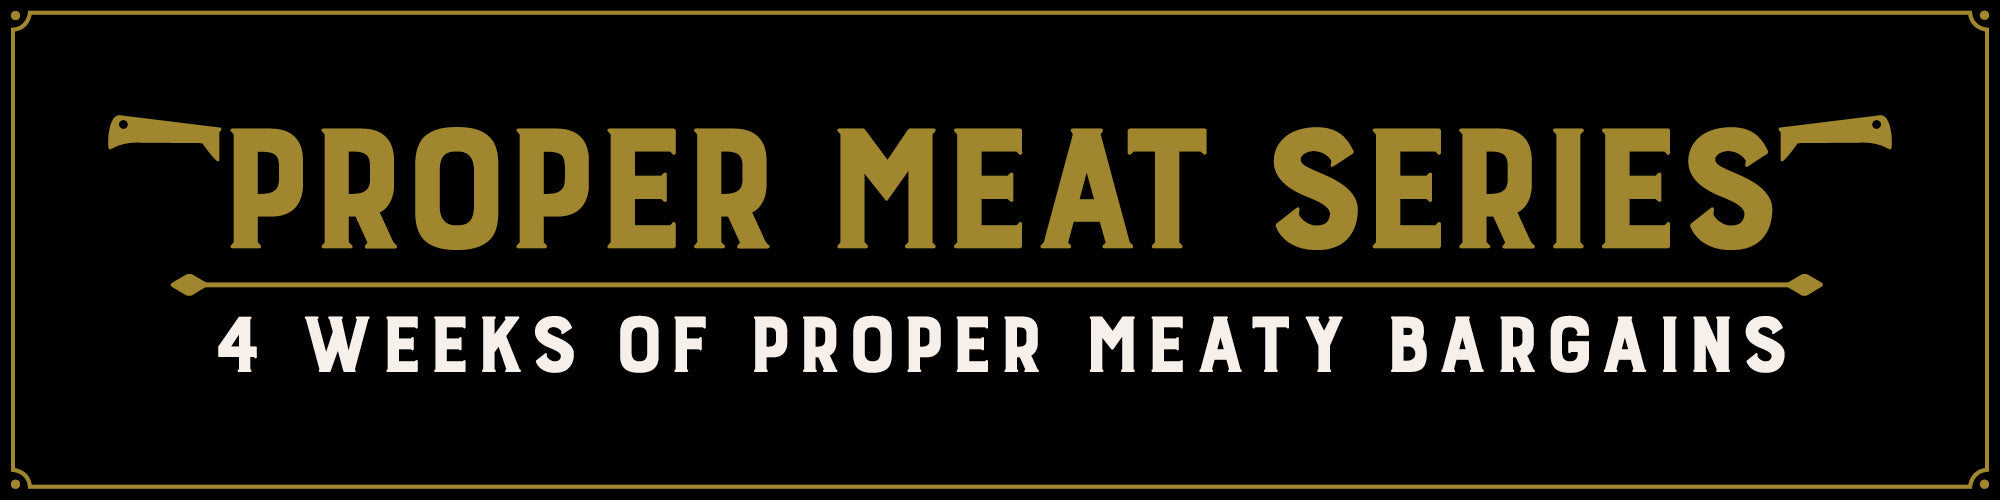 Check out our Proper Meat Series!